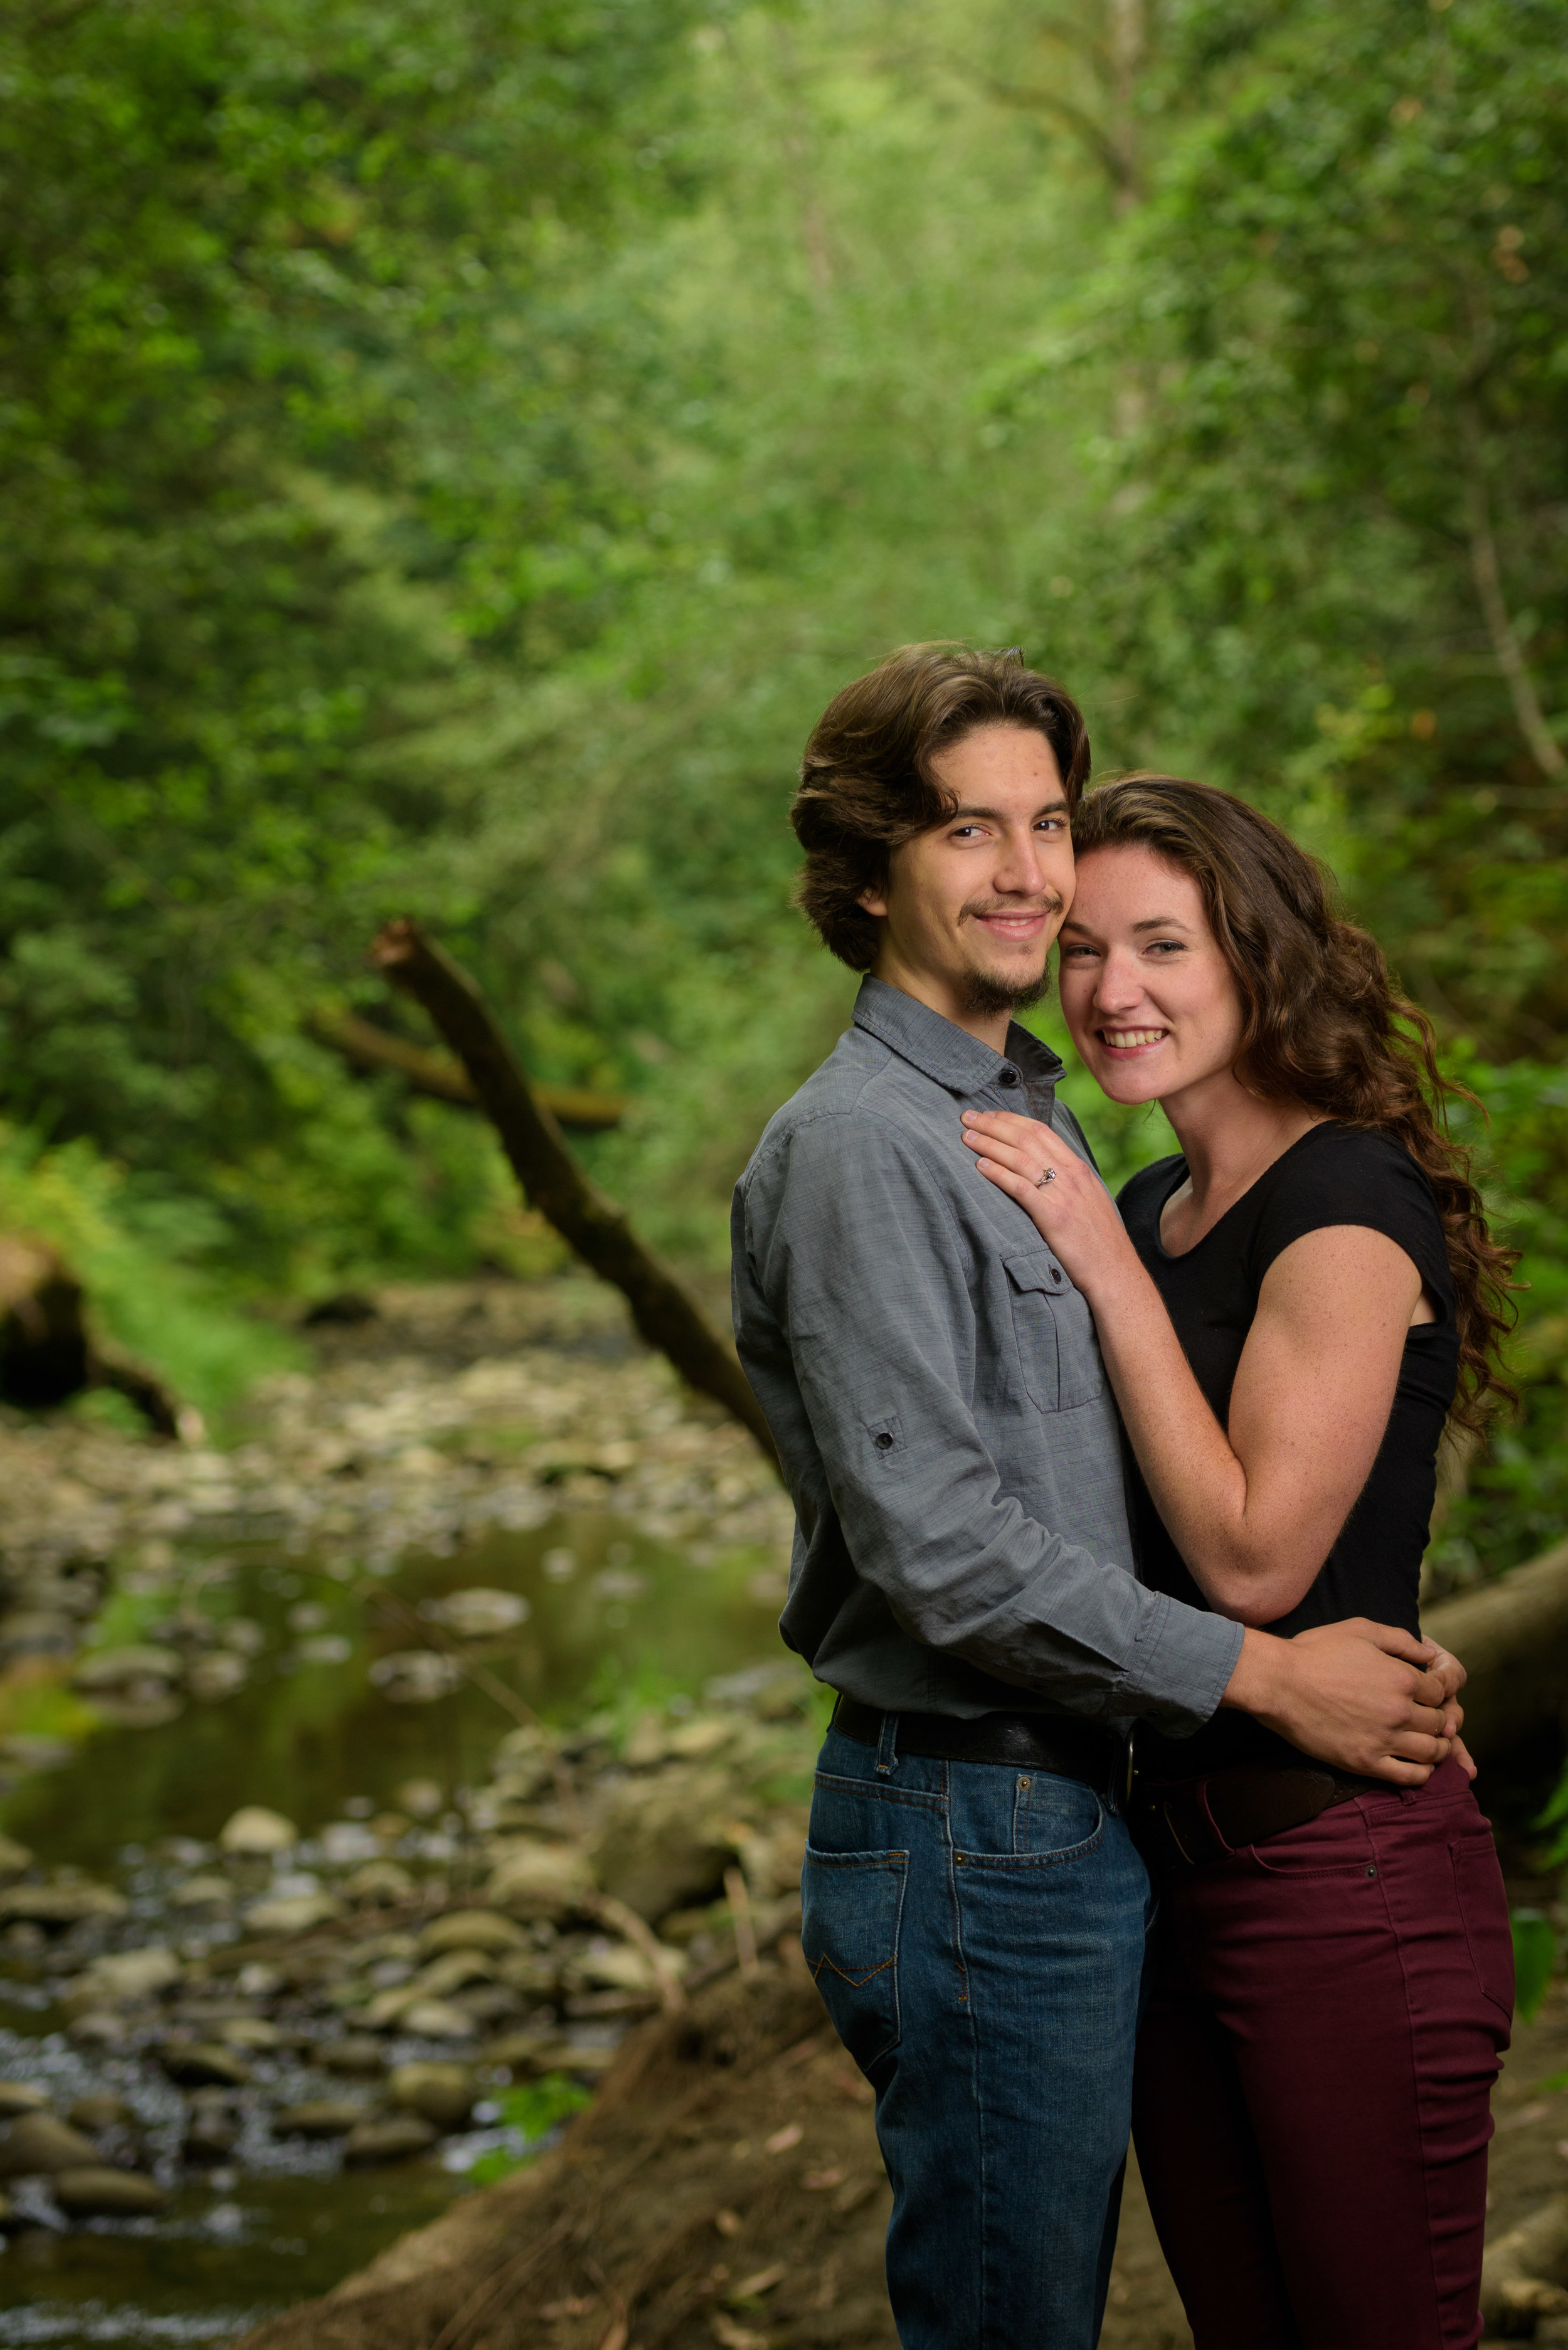 Couple cuddling and looking at camera with creek and forest in background - Engagement Photos in Nisene Marks Forest in Aptos, CA - by Bay Area wedding photographer Chris Schmauch